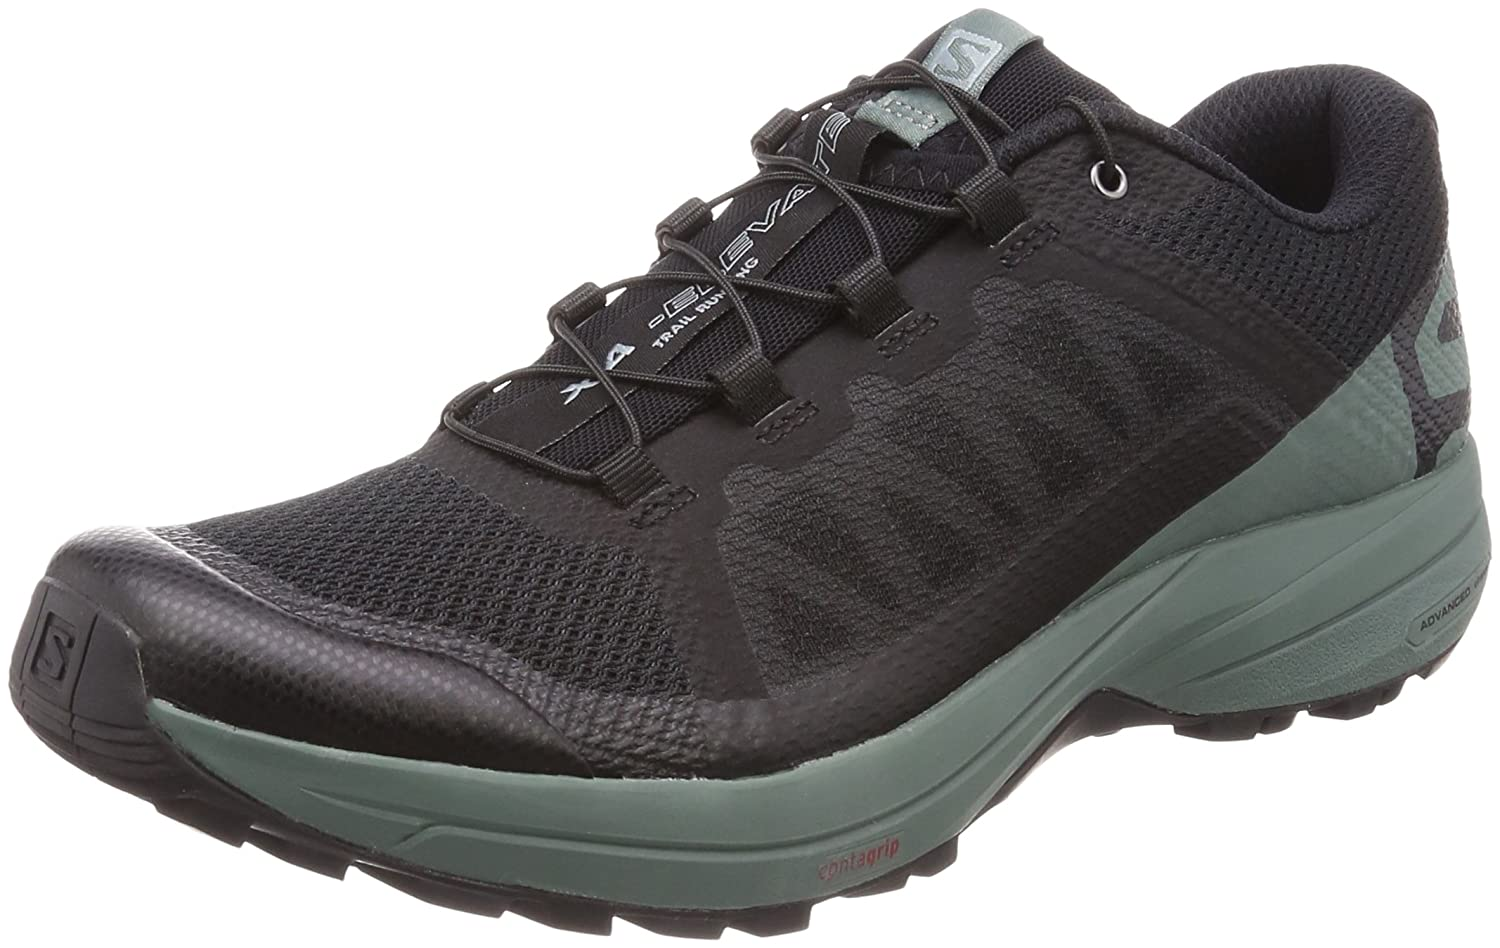 Black, Balsam Green, Black Salomon Men's Xa Elevate Running shoes